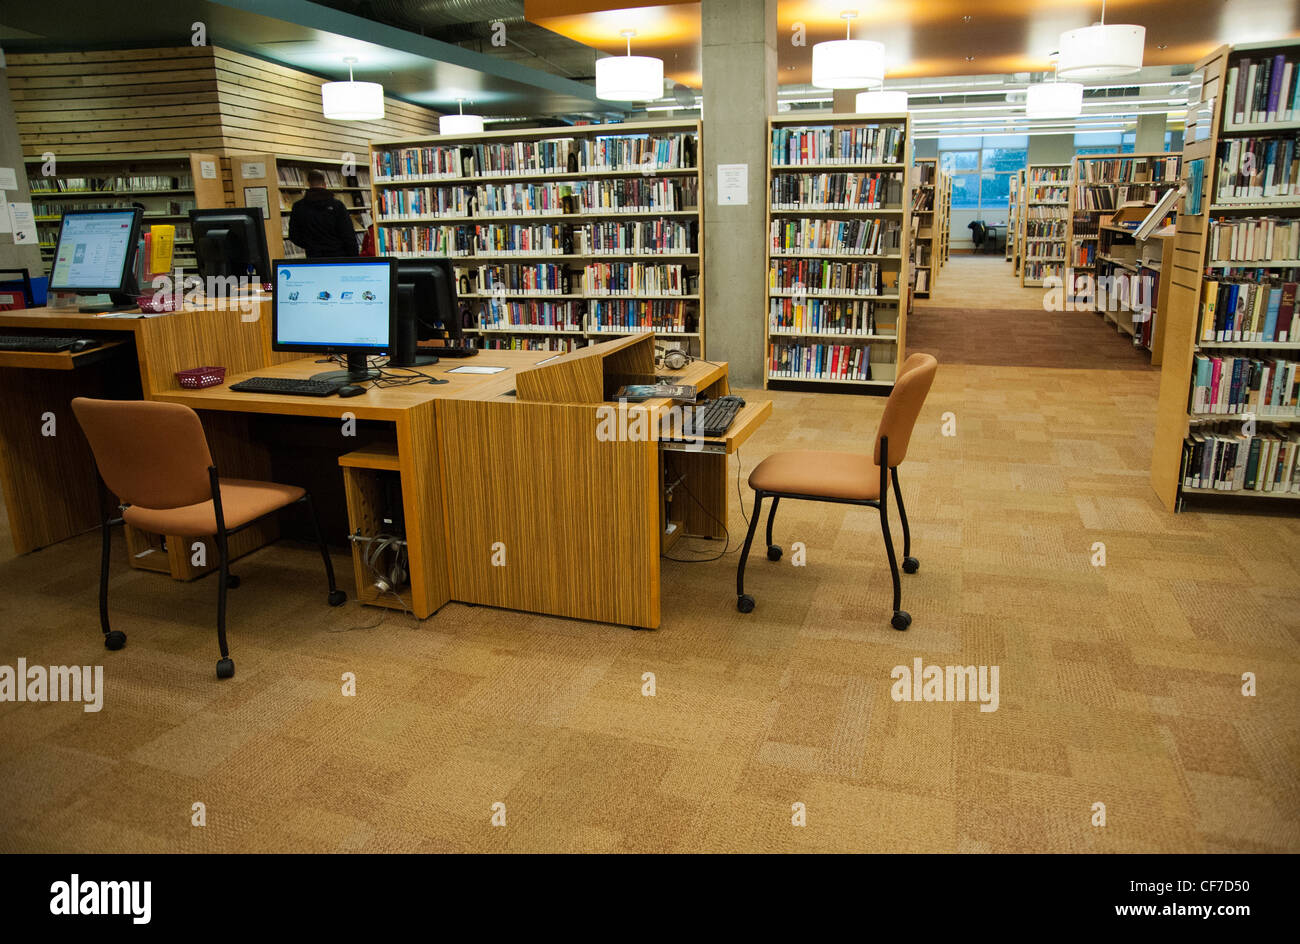 Interior of library with computer stations - Stock Image